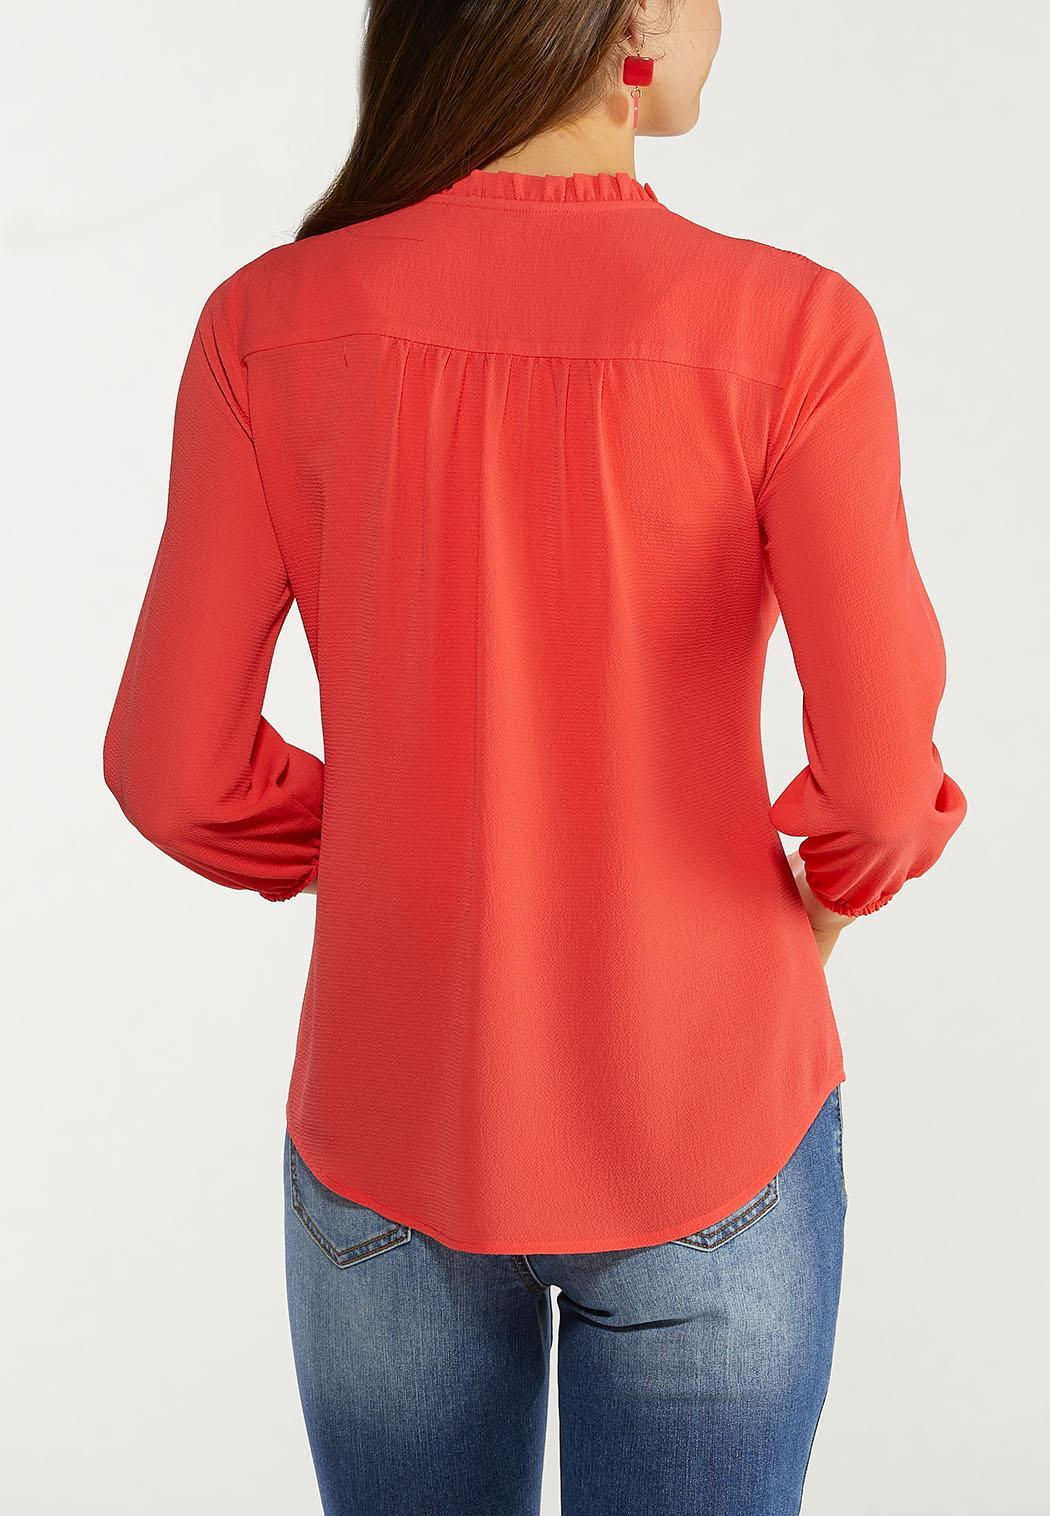 Spice Ruffled Button Top (Item #44561937)